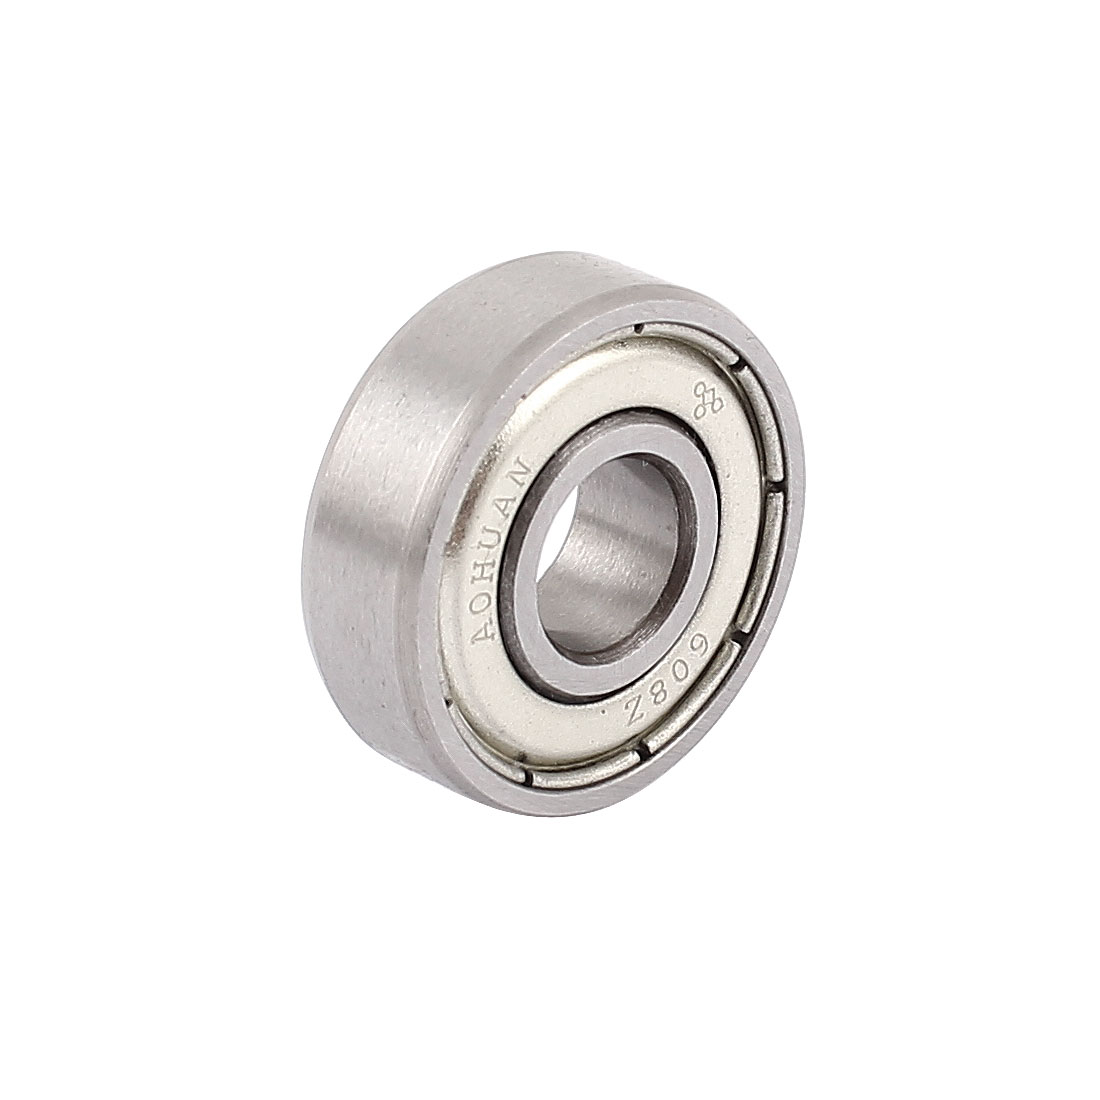 Metal 22mm x 8mm x 7mm Rod Cam Needle Roller Groove Ball Bearing